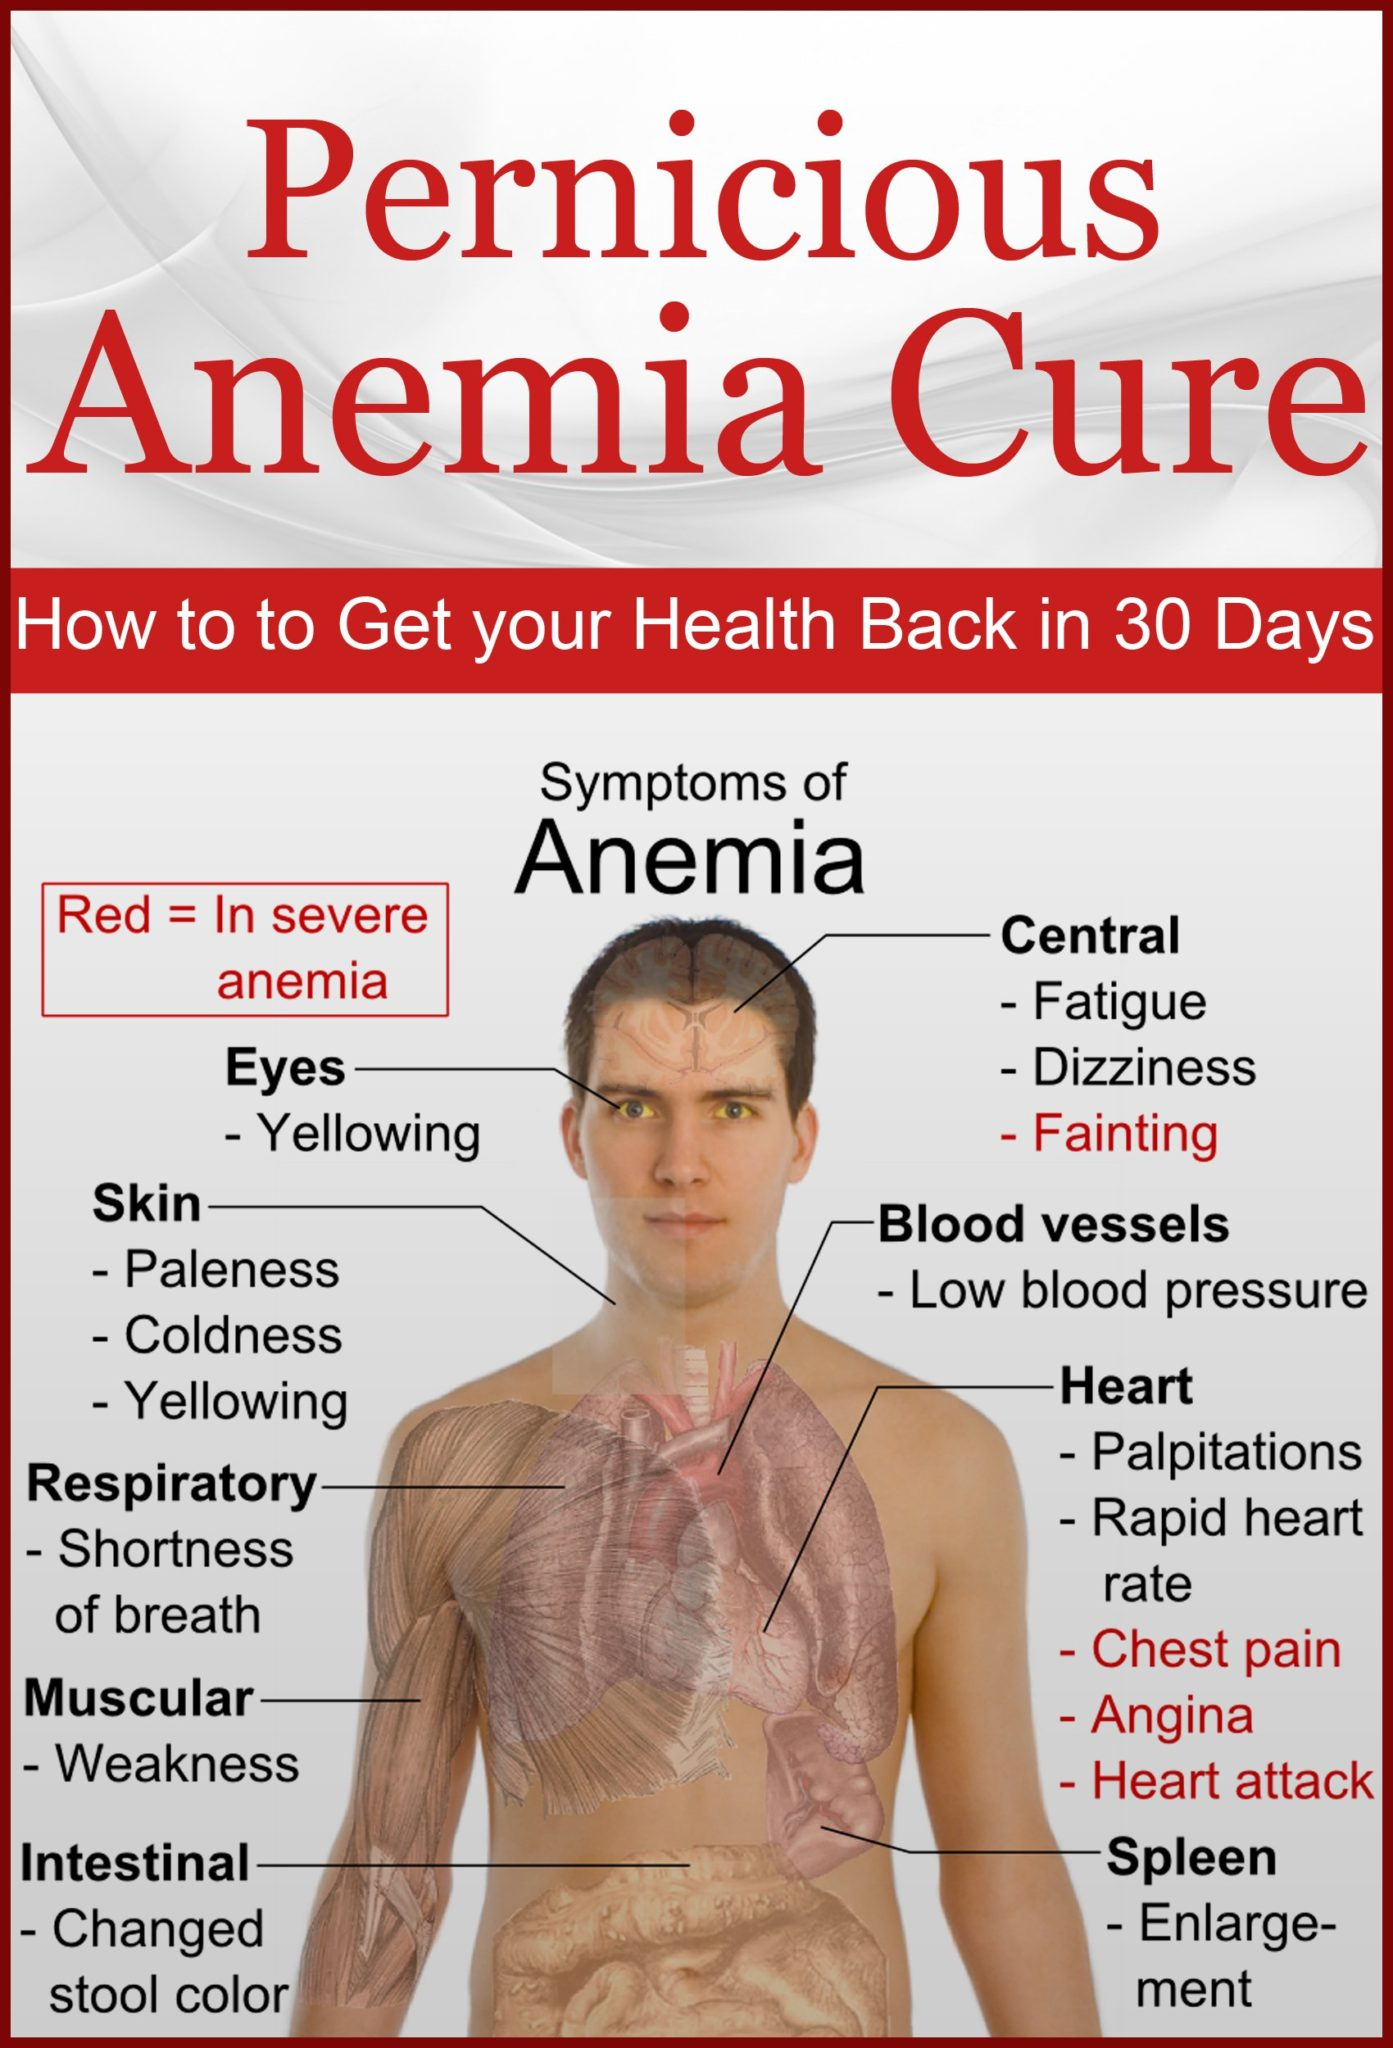 an introduction to the disease pernicious anemia Introduction: pernicious anemia is an autoimmune disease it is characterized by the presence of an autoimmune atrophic gastritis and various autoantibodies that lead to a vitamin b12 deficiency responsible for a macrocytic anemia.